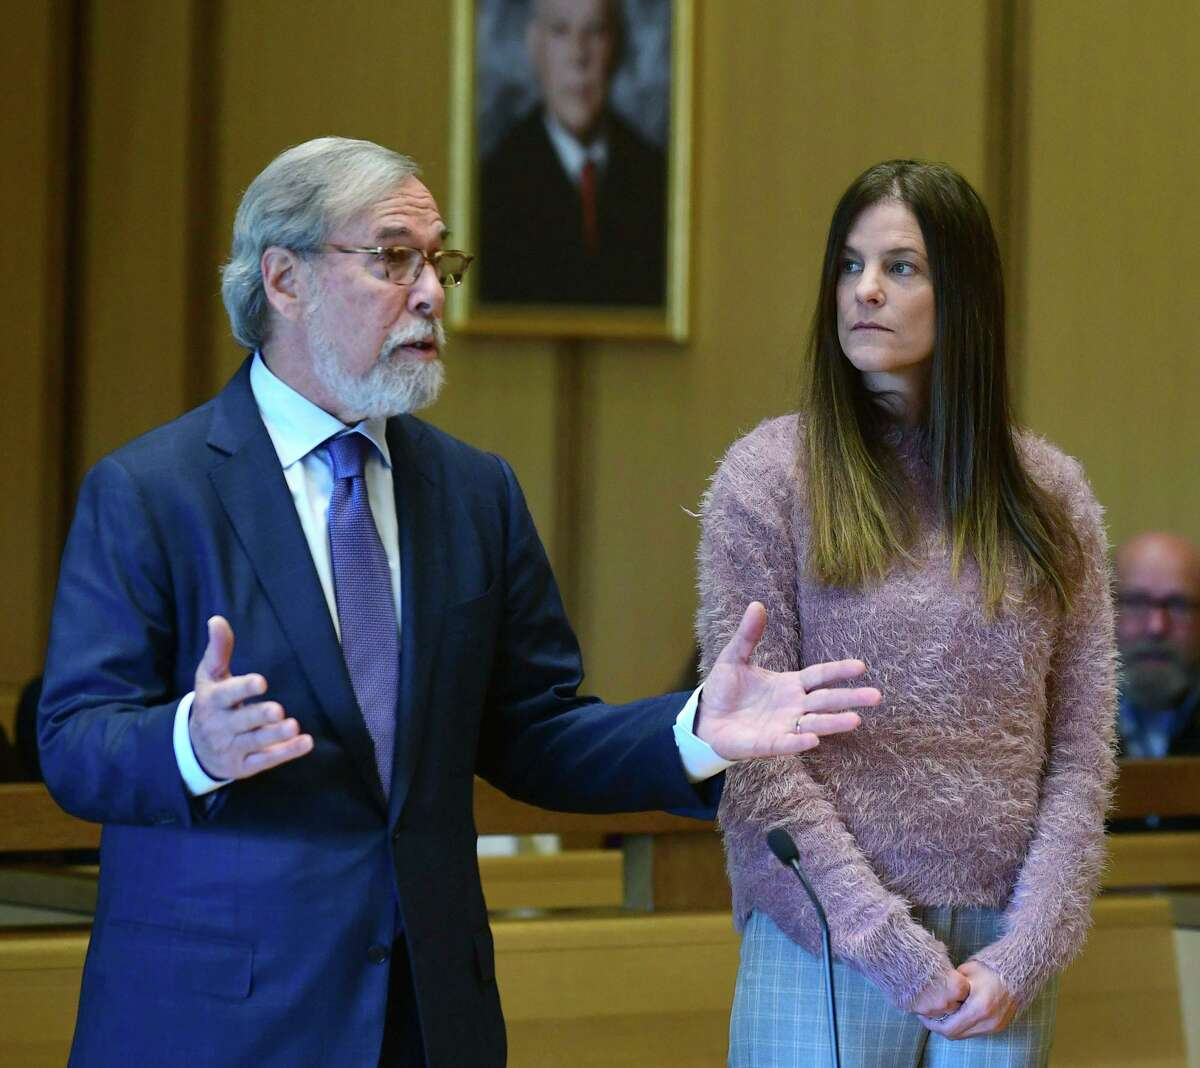 Michelle Troconis, charged with two counts of tampering with evidence and hindering prosecution in the disappearance of Jennifer Dulos, listens to her attorney Andrew Bowman while appearing for a pre-trial hearing Friday, Oct. 25, 2019, at the Stamford Superior Court in Stamford, Conn.